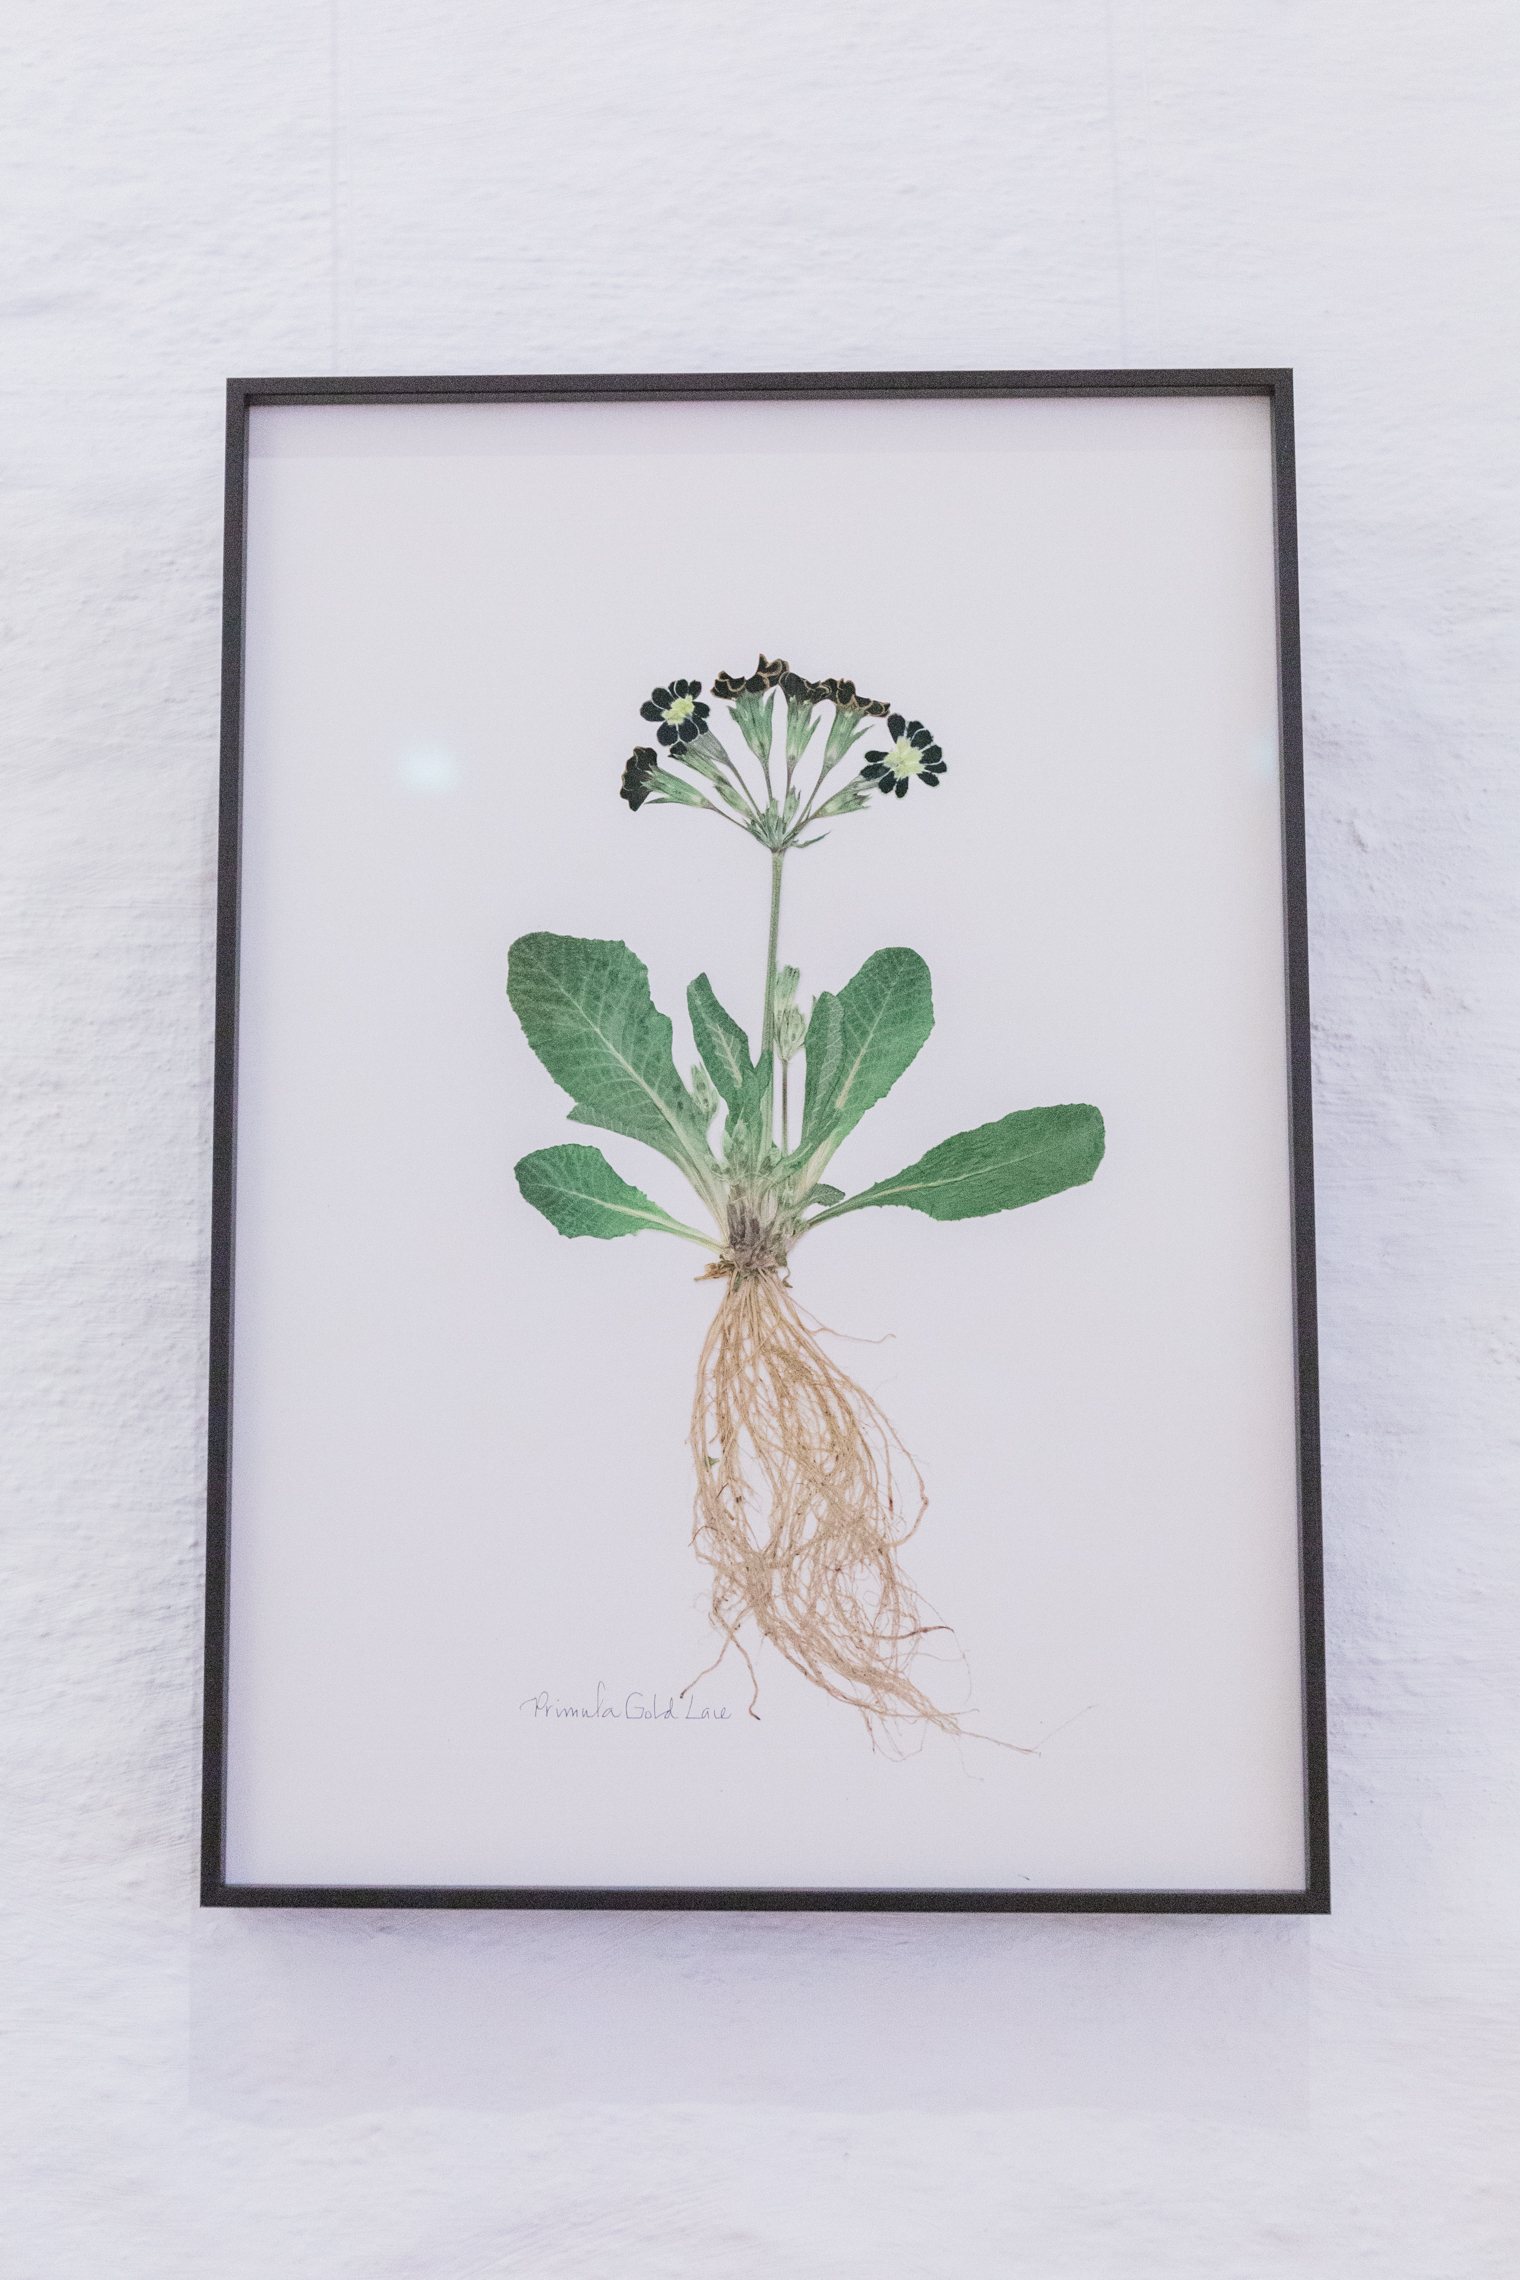 The Nature of Thyme Exhibition